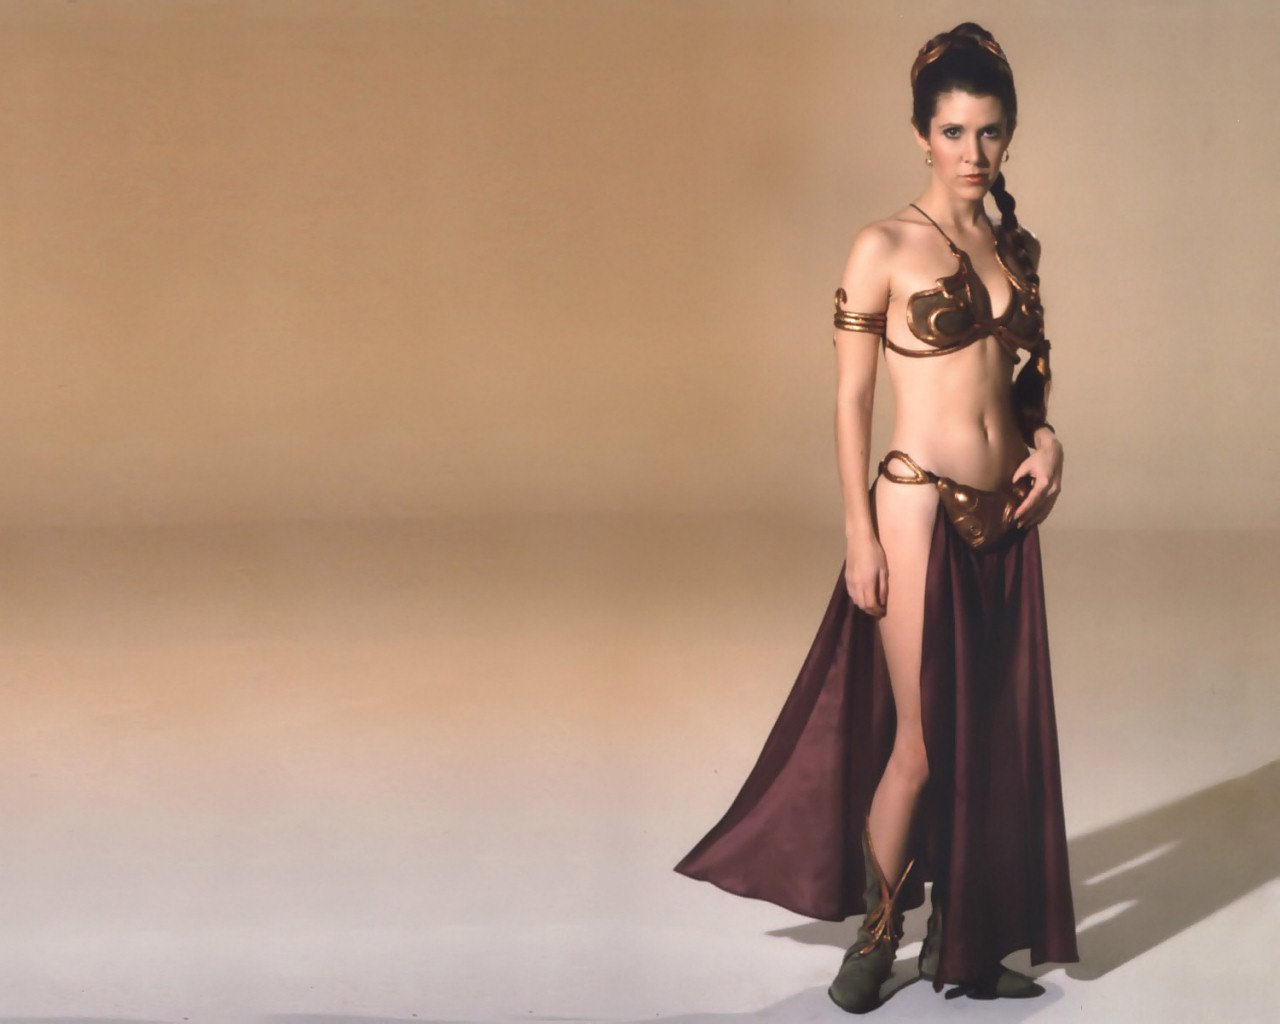 1280x1024 - Carrie Fisher Wallpapers 28